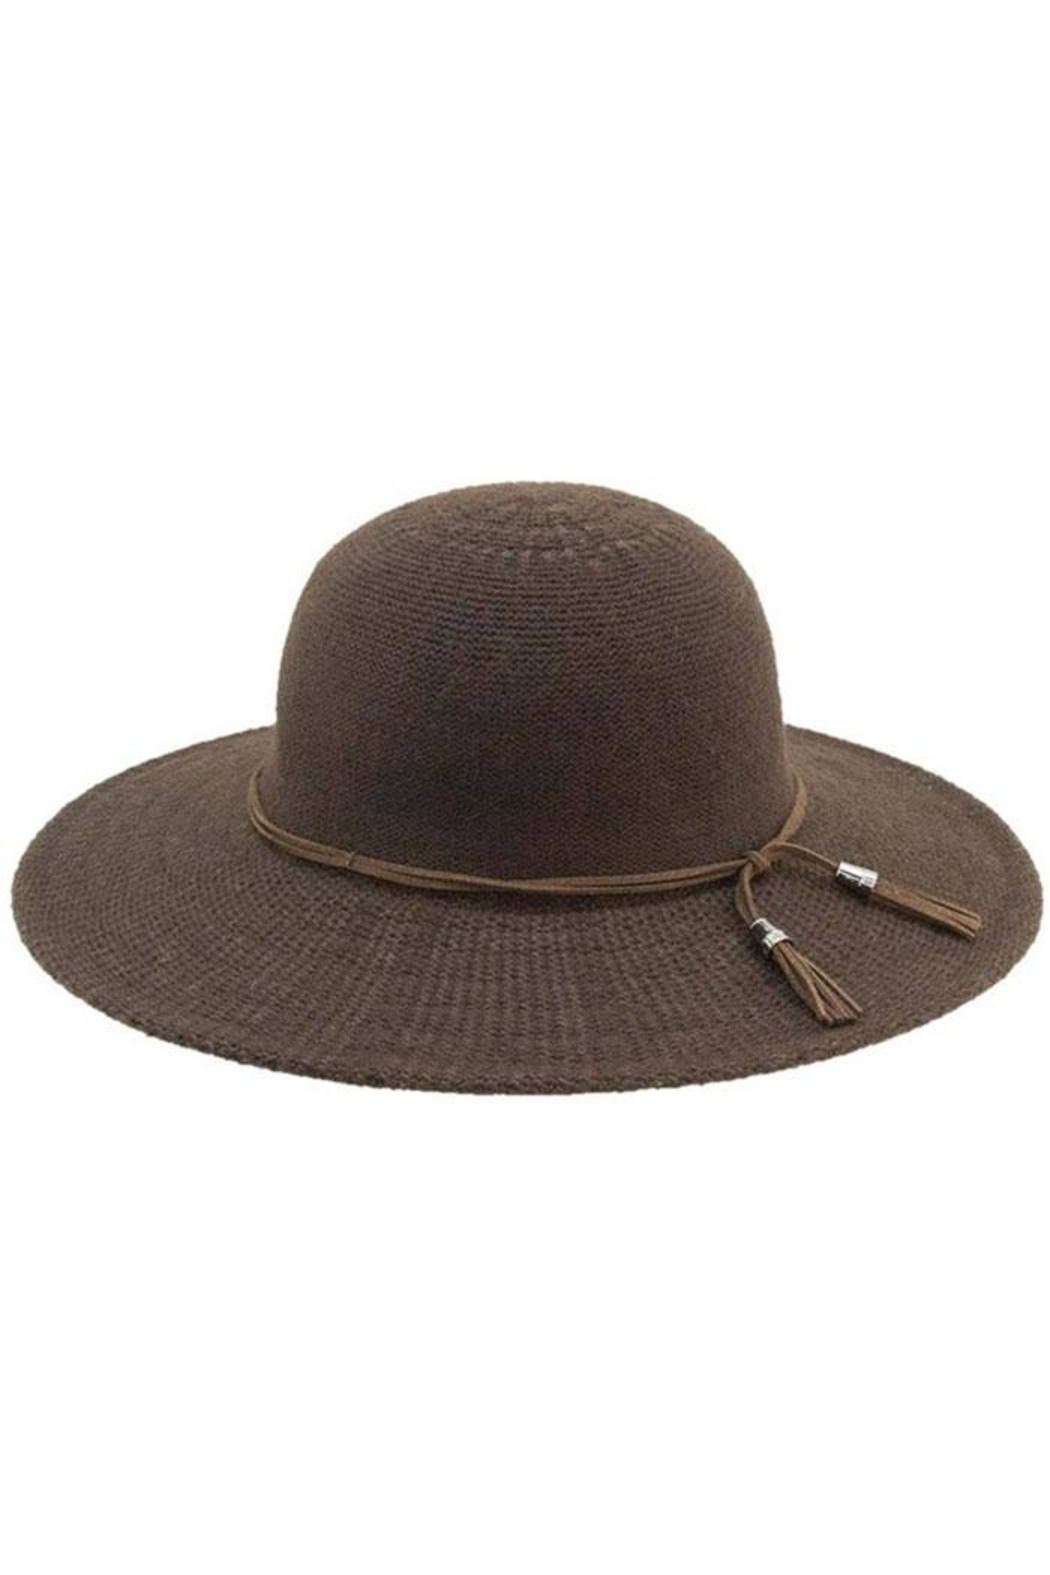 Too Too Hat Floppy Hat With Suede Tie - Front Cropped Image